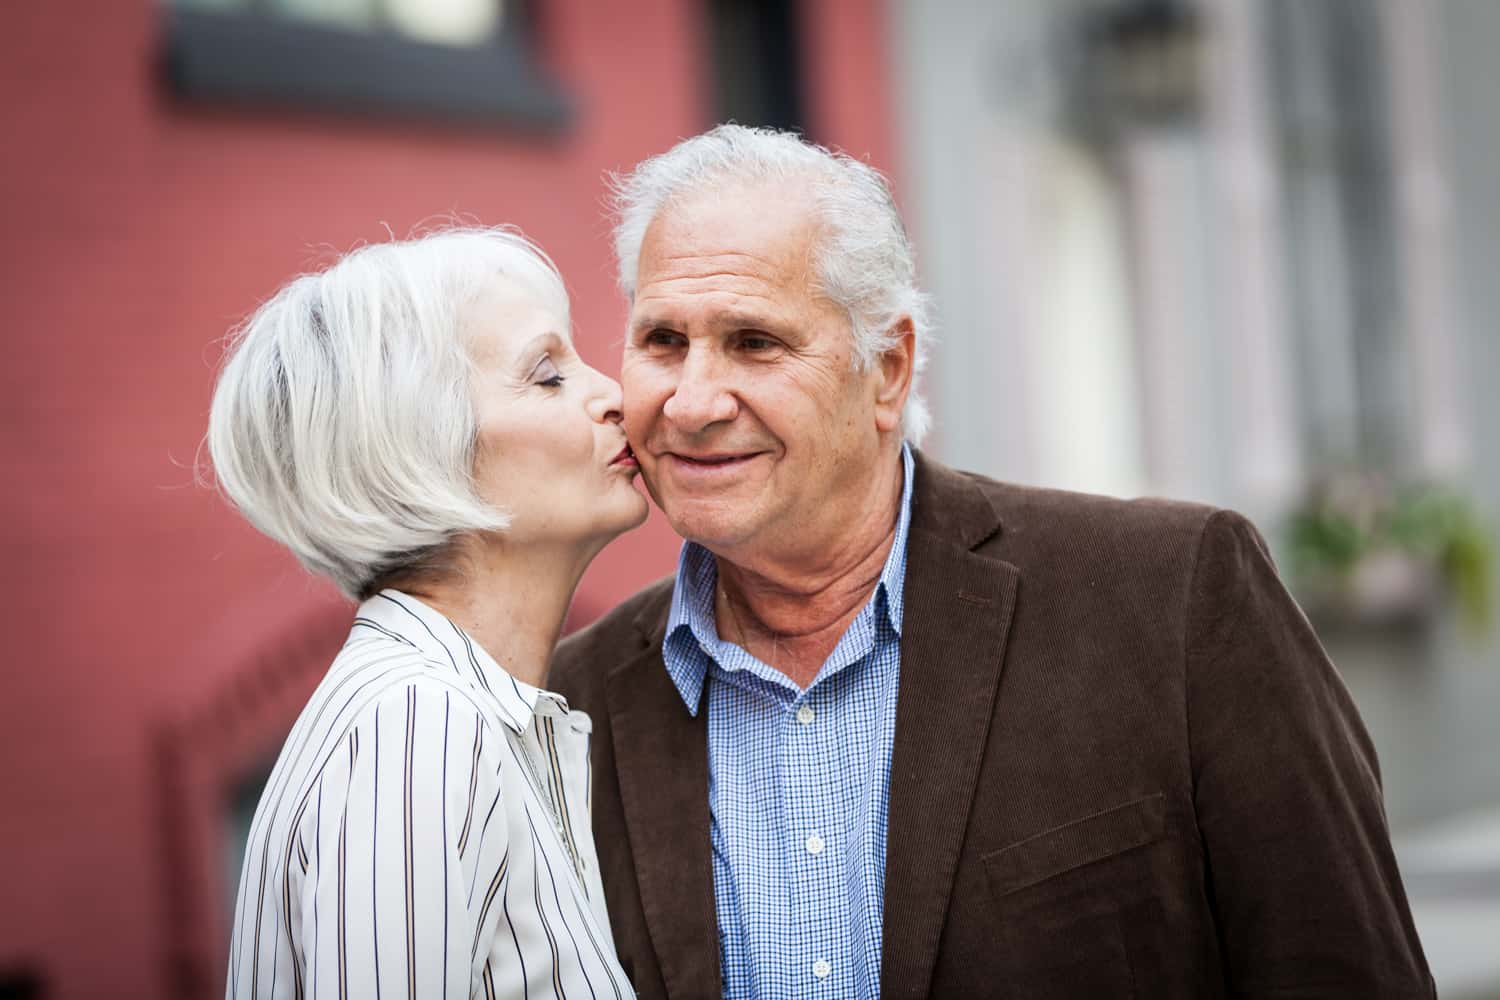 Older woman kissing man on the cheek